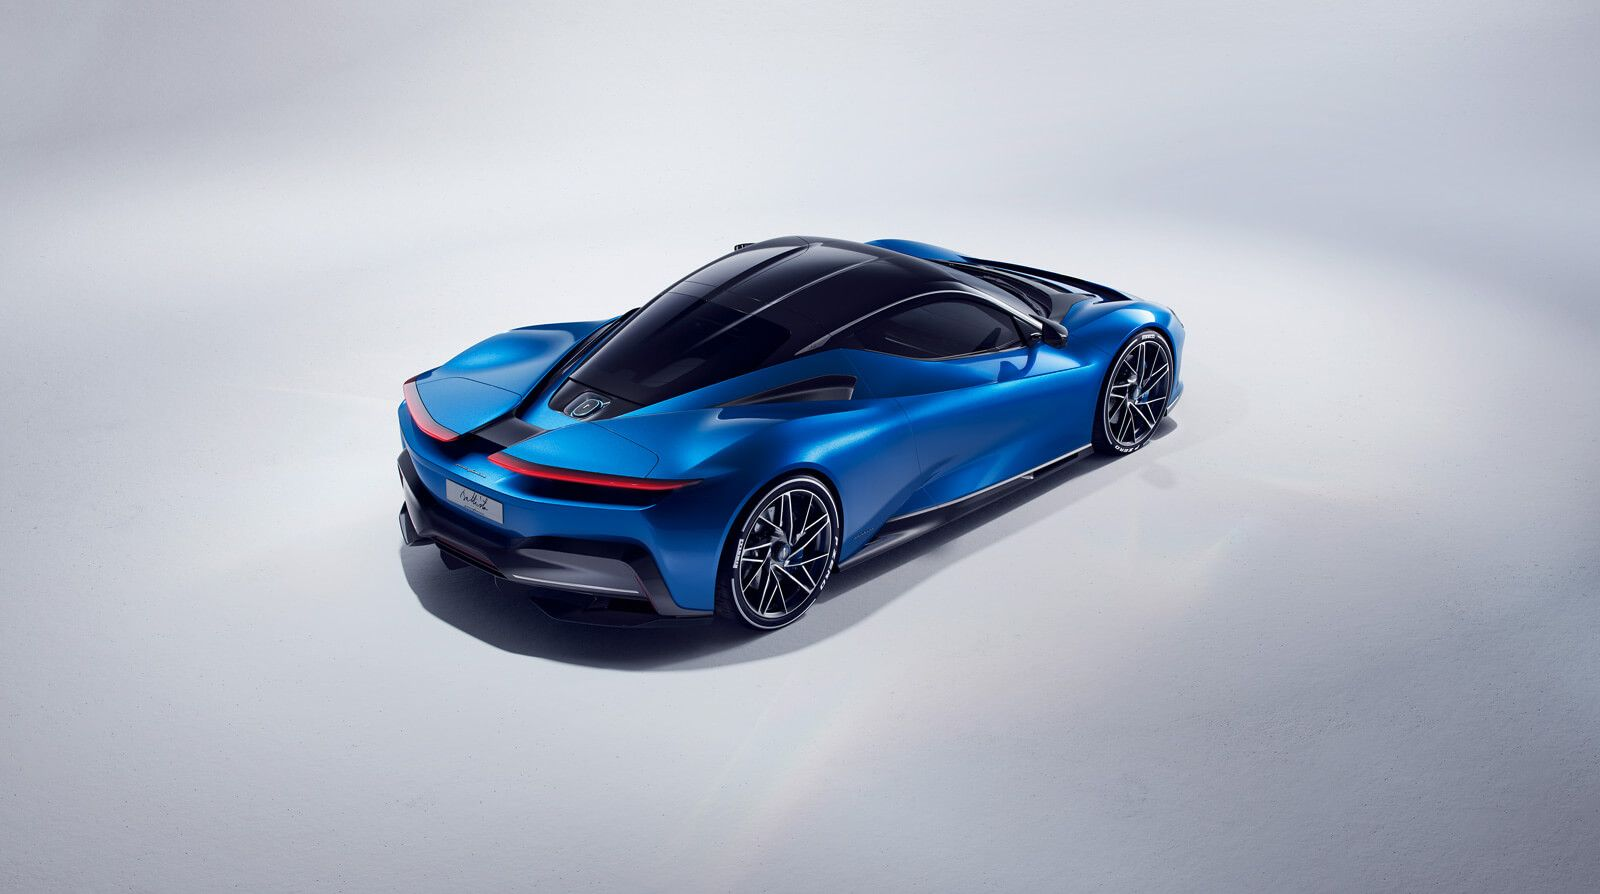 Pininfarina S 1 900 Hp Electric Supercar Is The Future We Want Auto